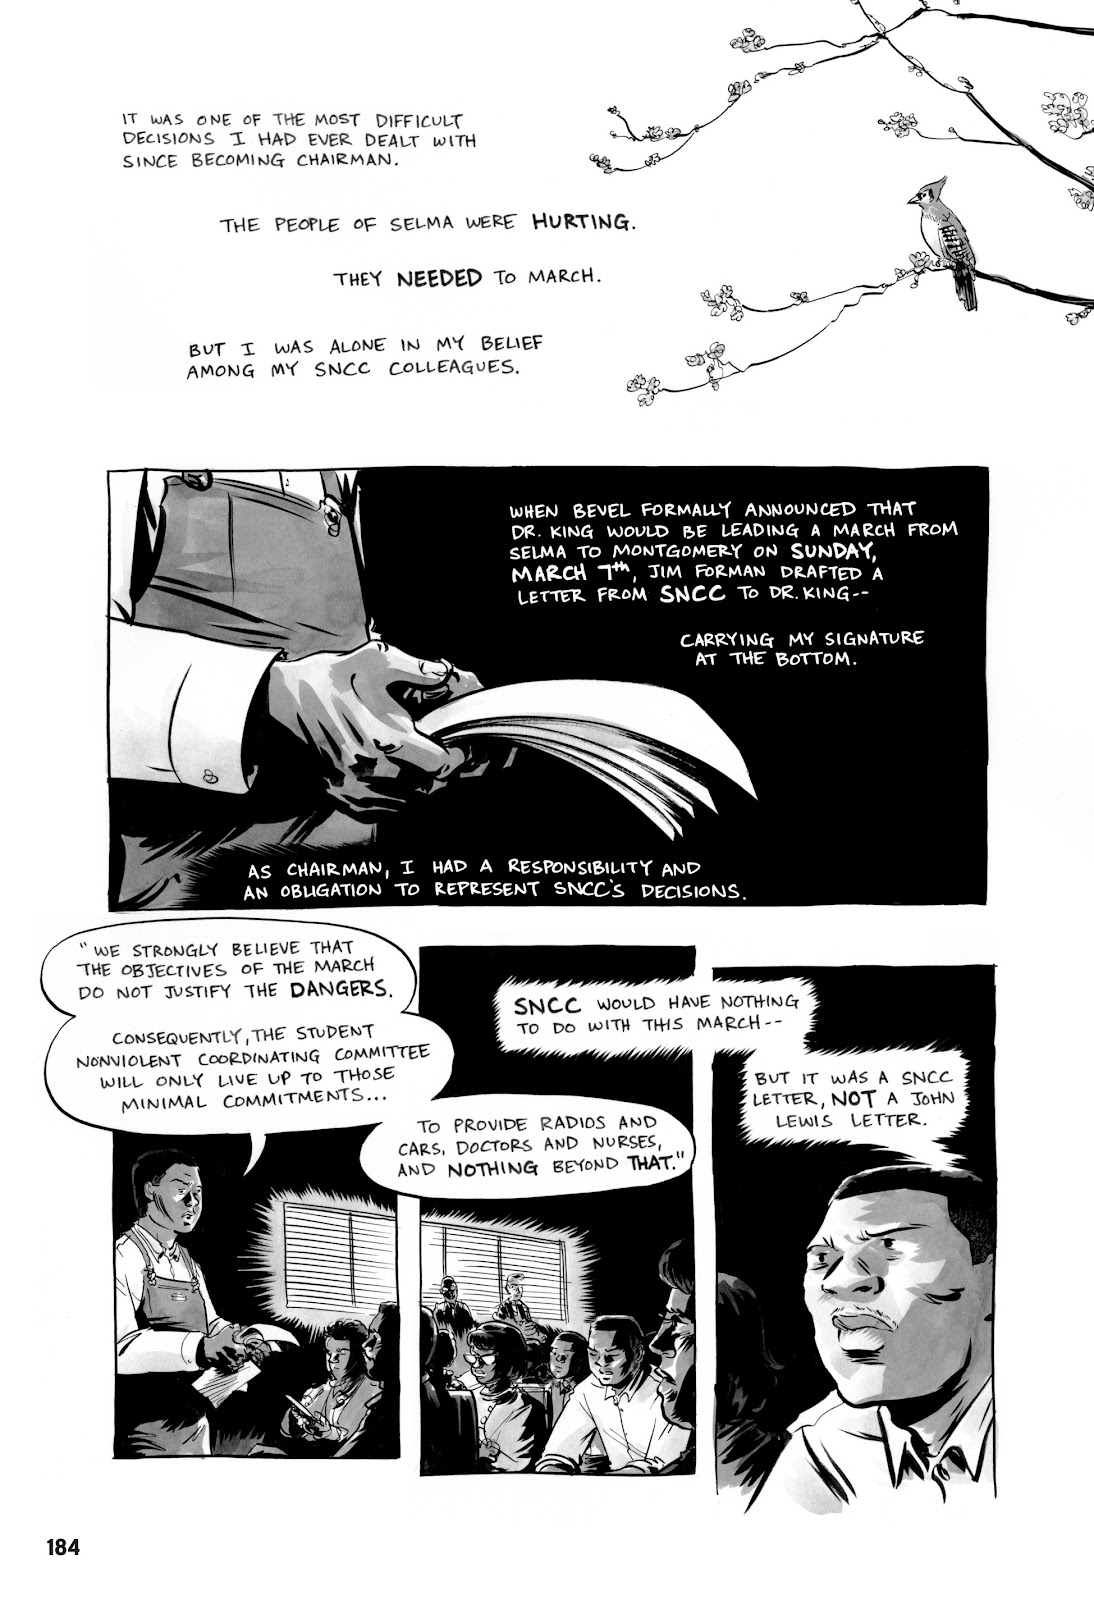 March 3 Page 178